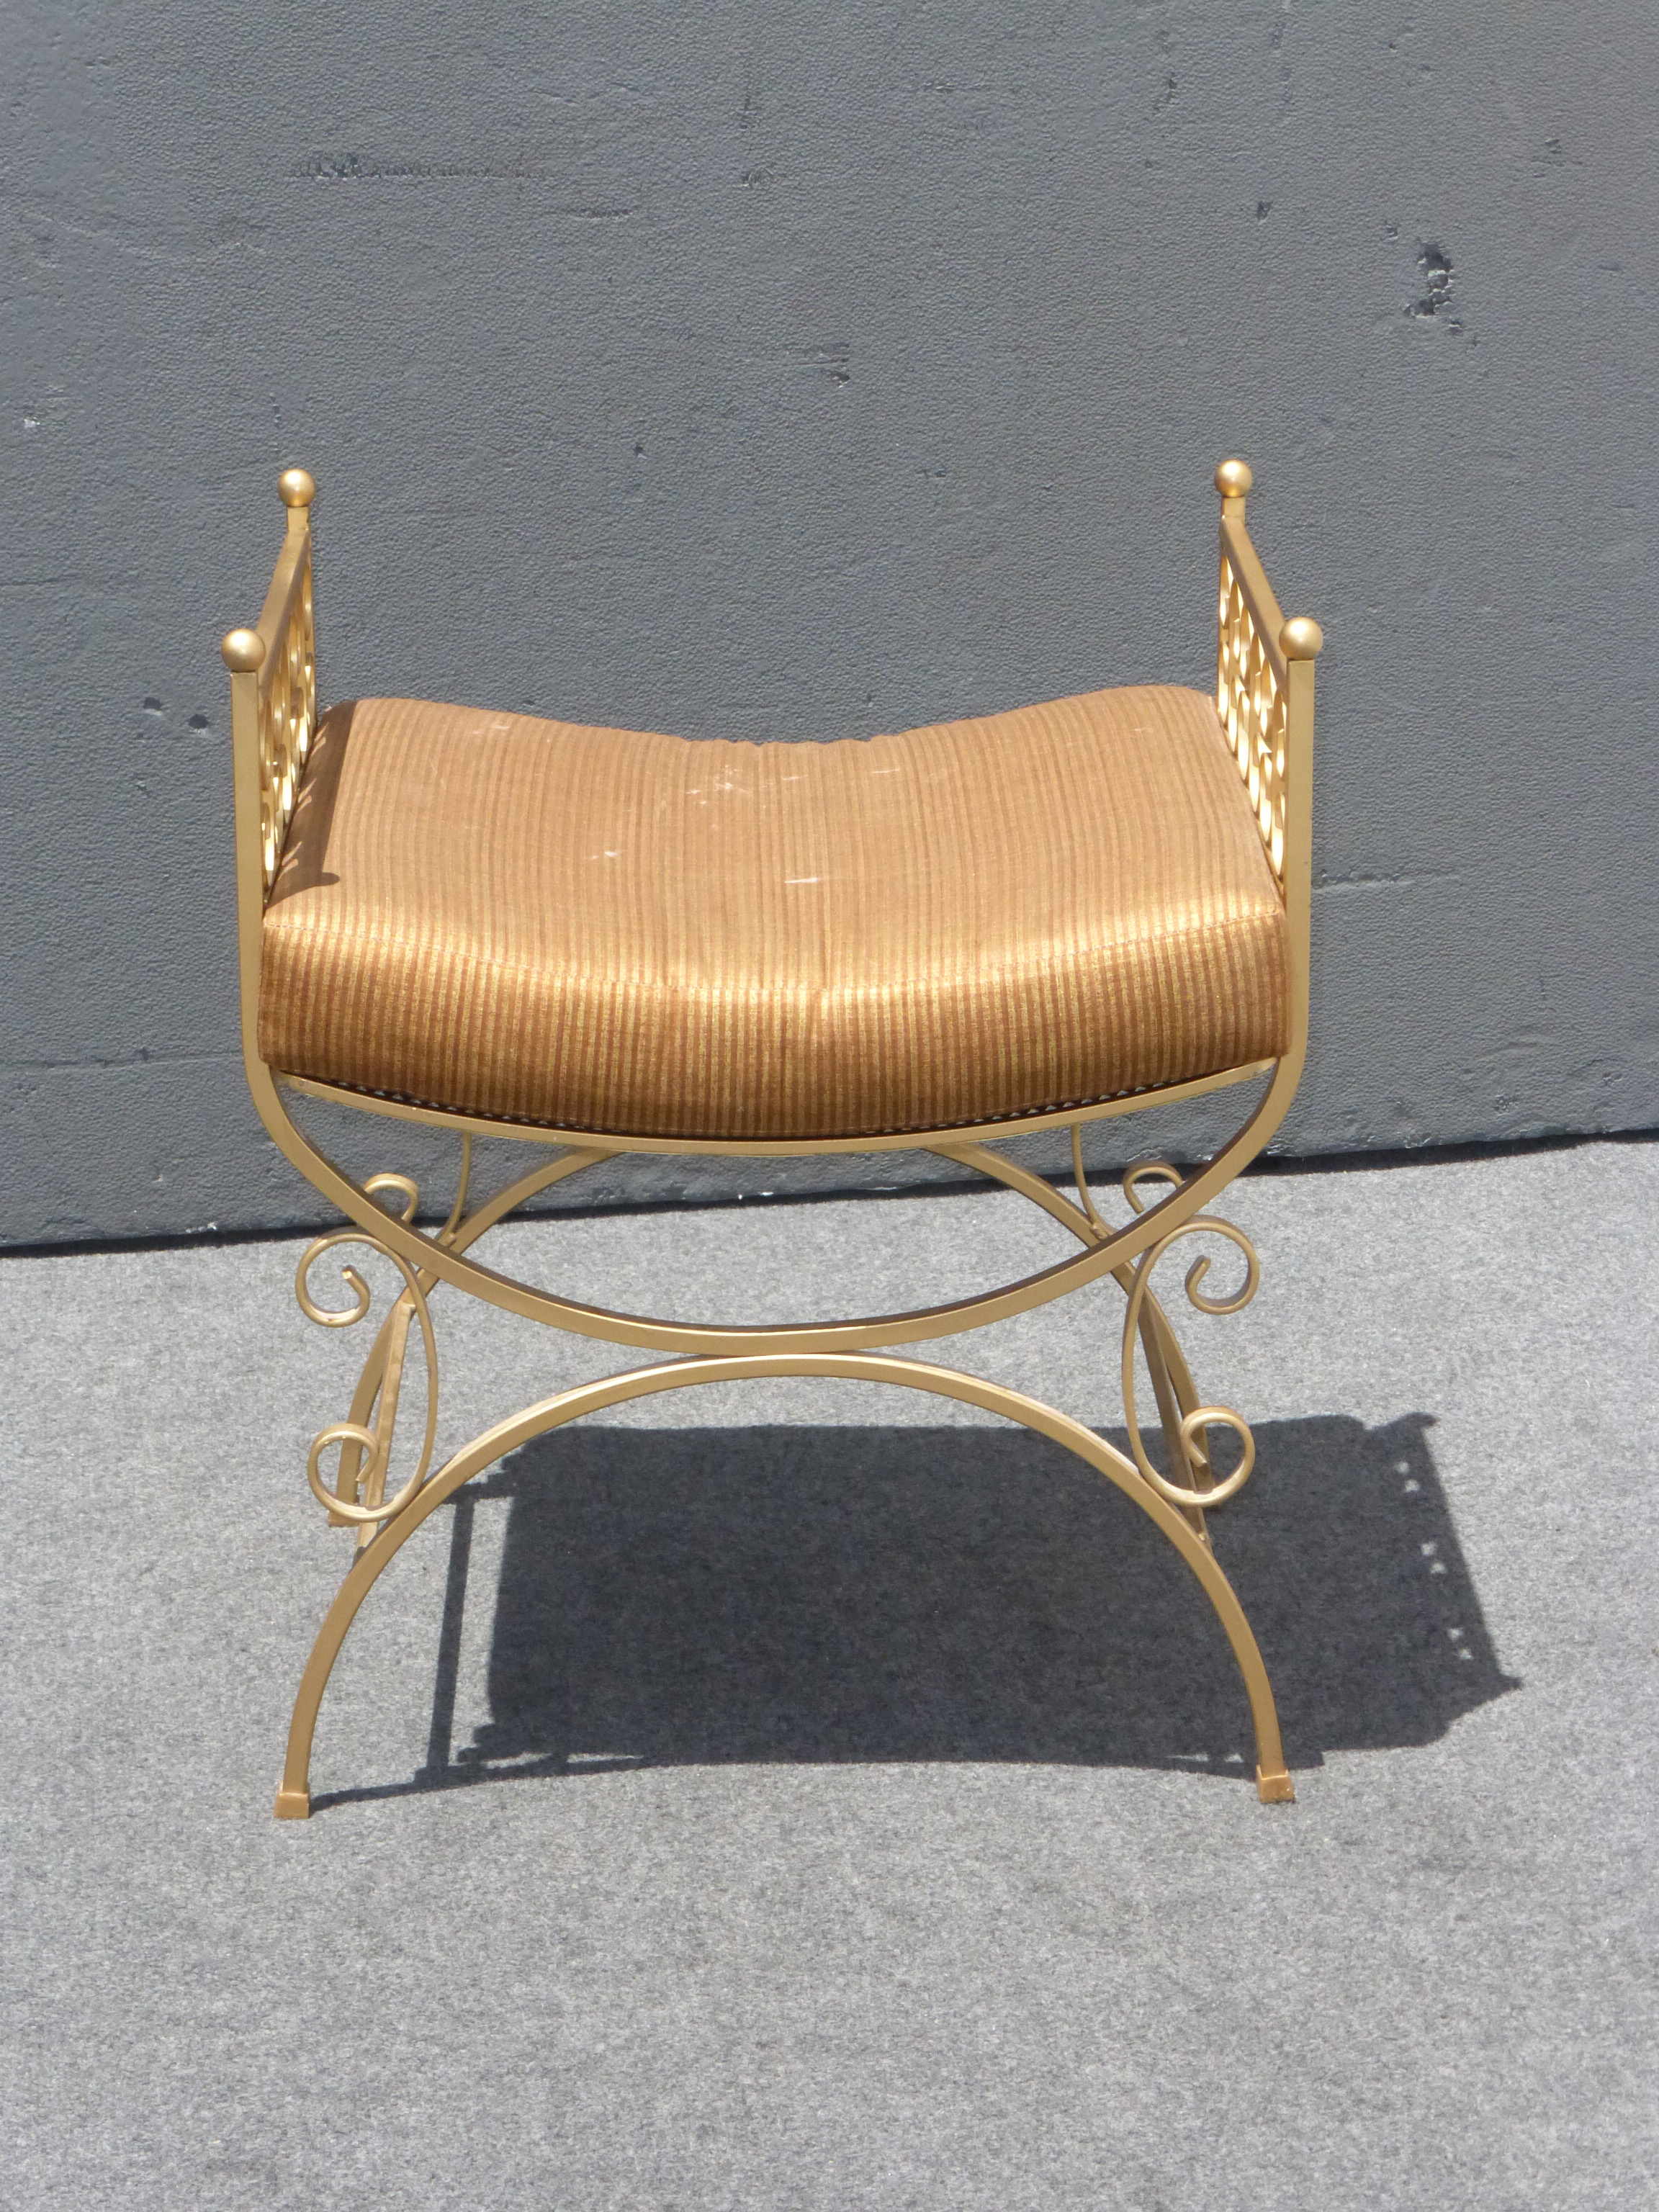 Vintage French Gold Metal Painted Vanity Bench   Image 3 Of 11